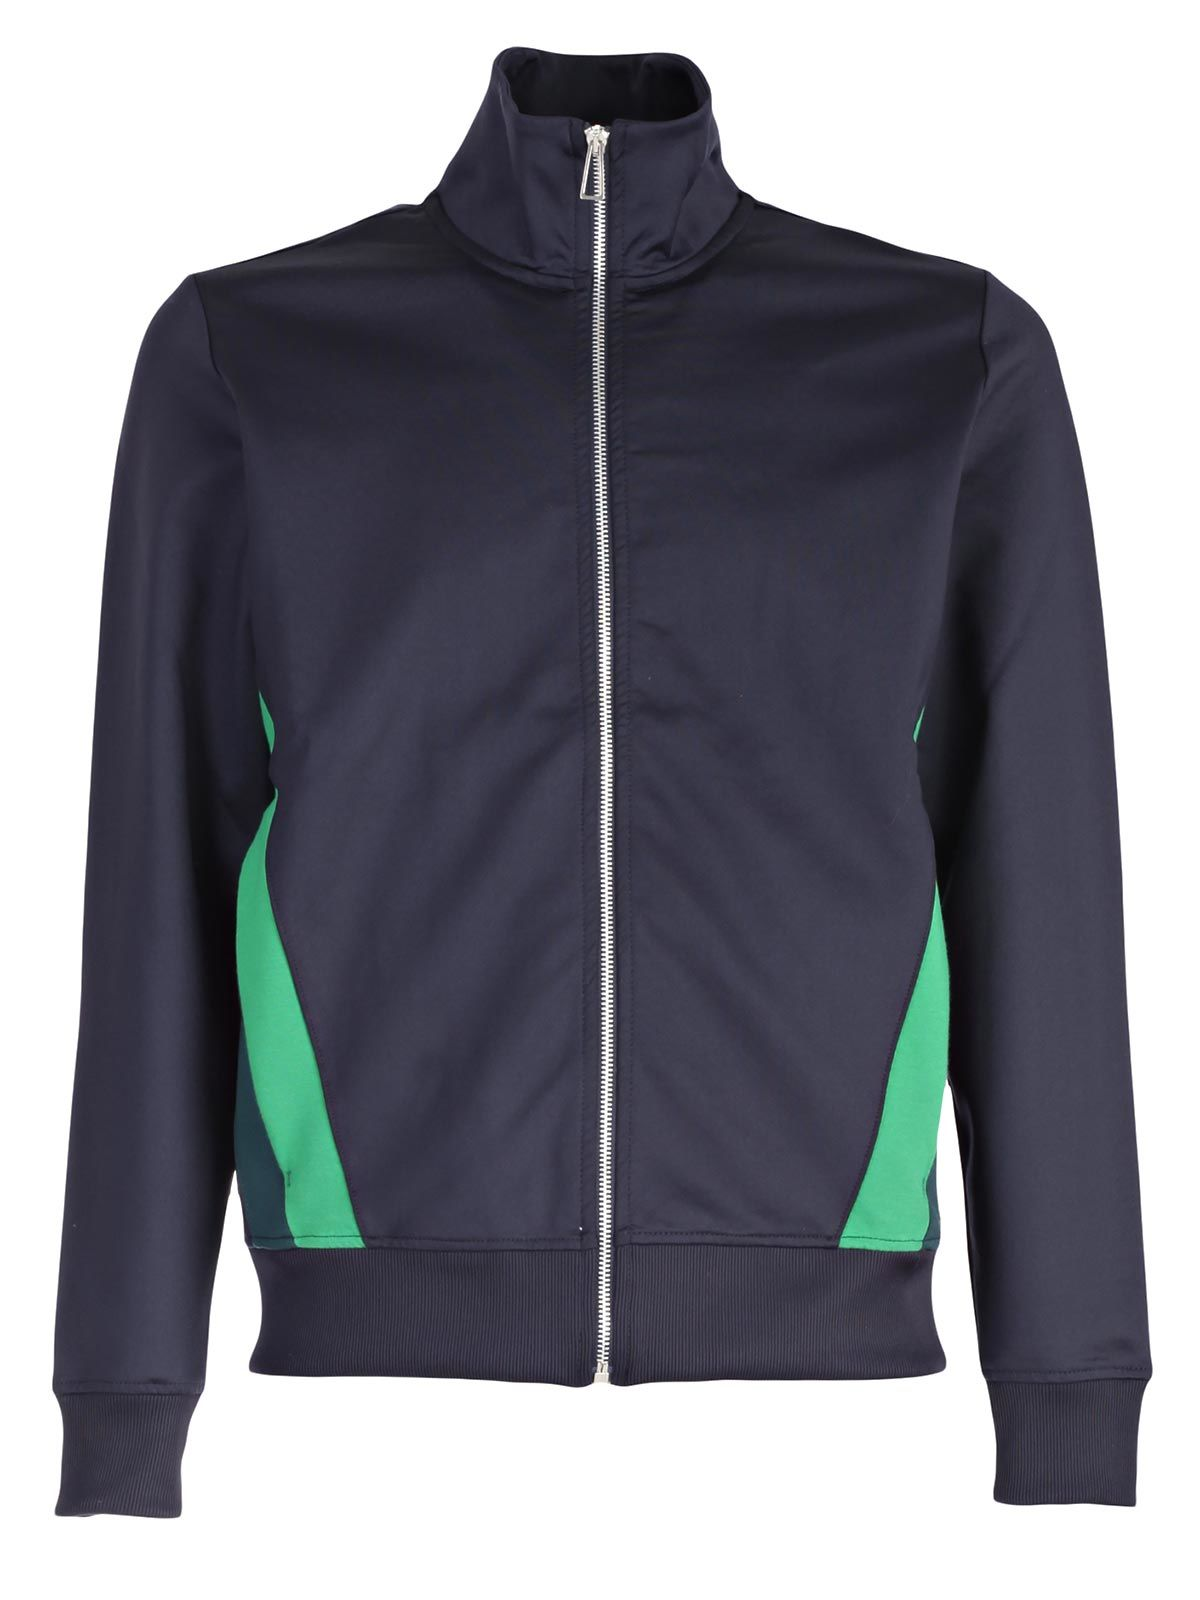 PS by Paul Smith Jacket